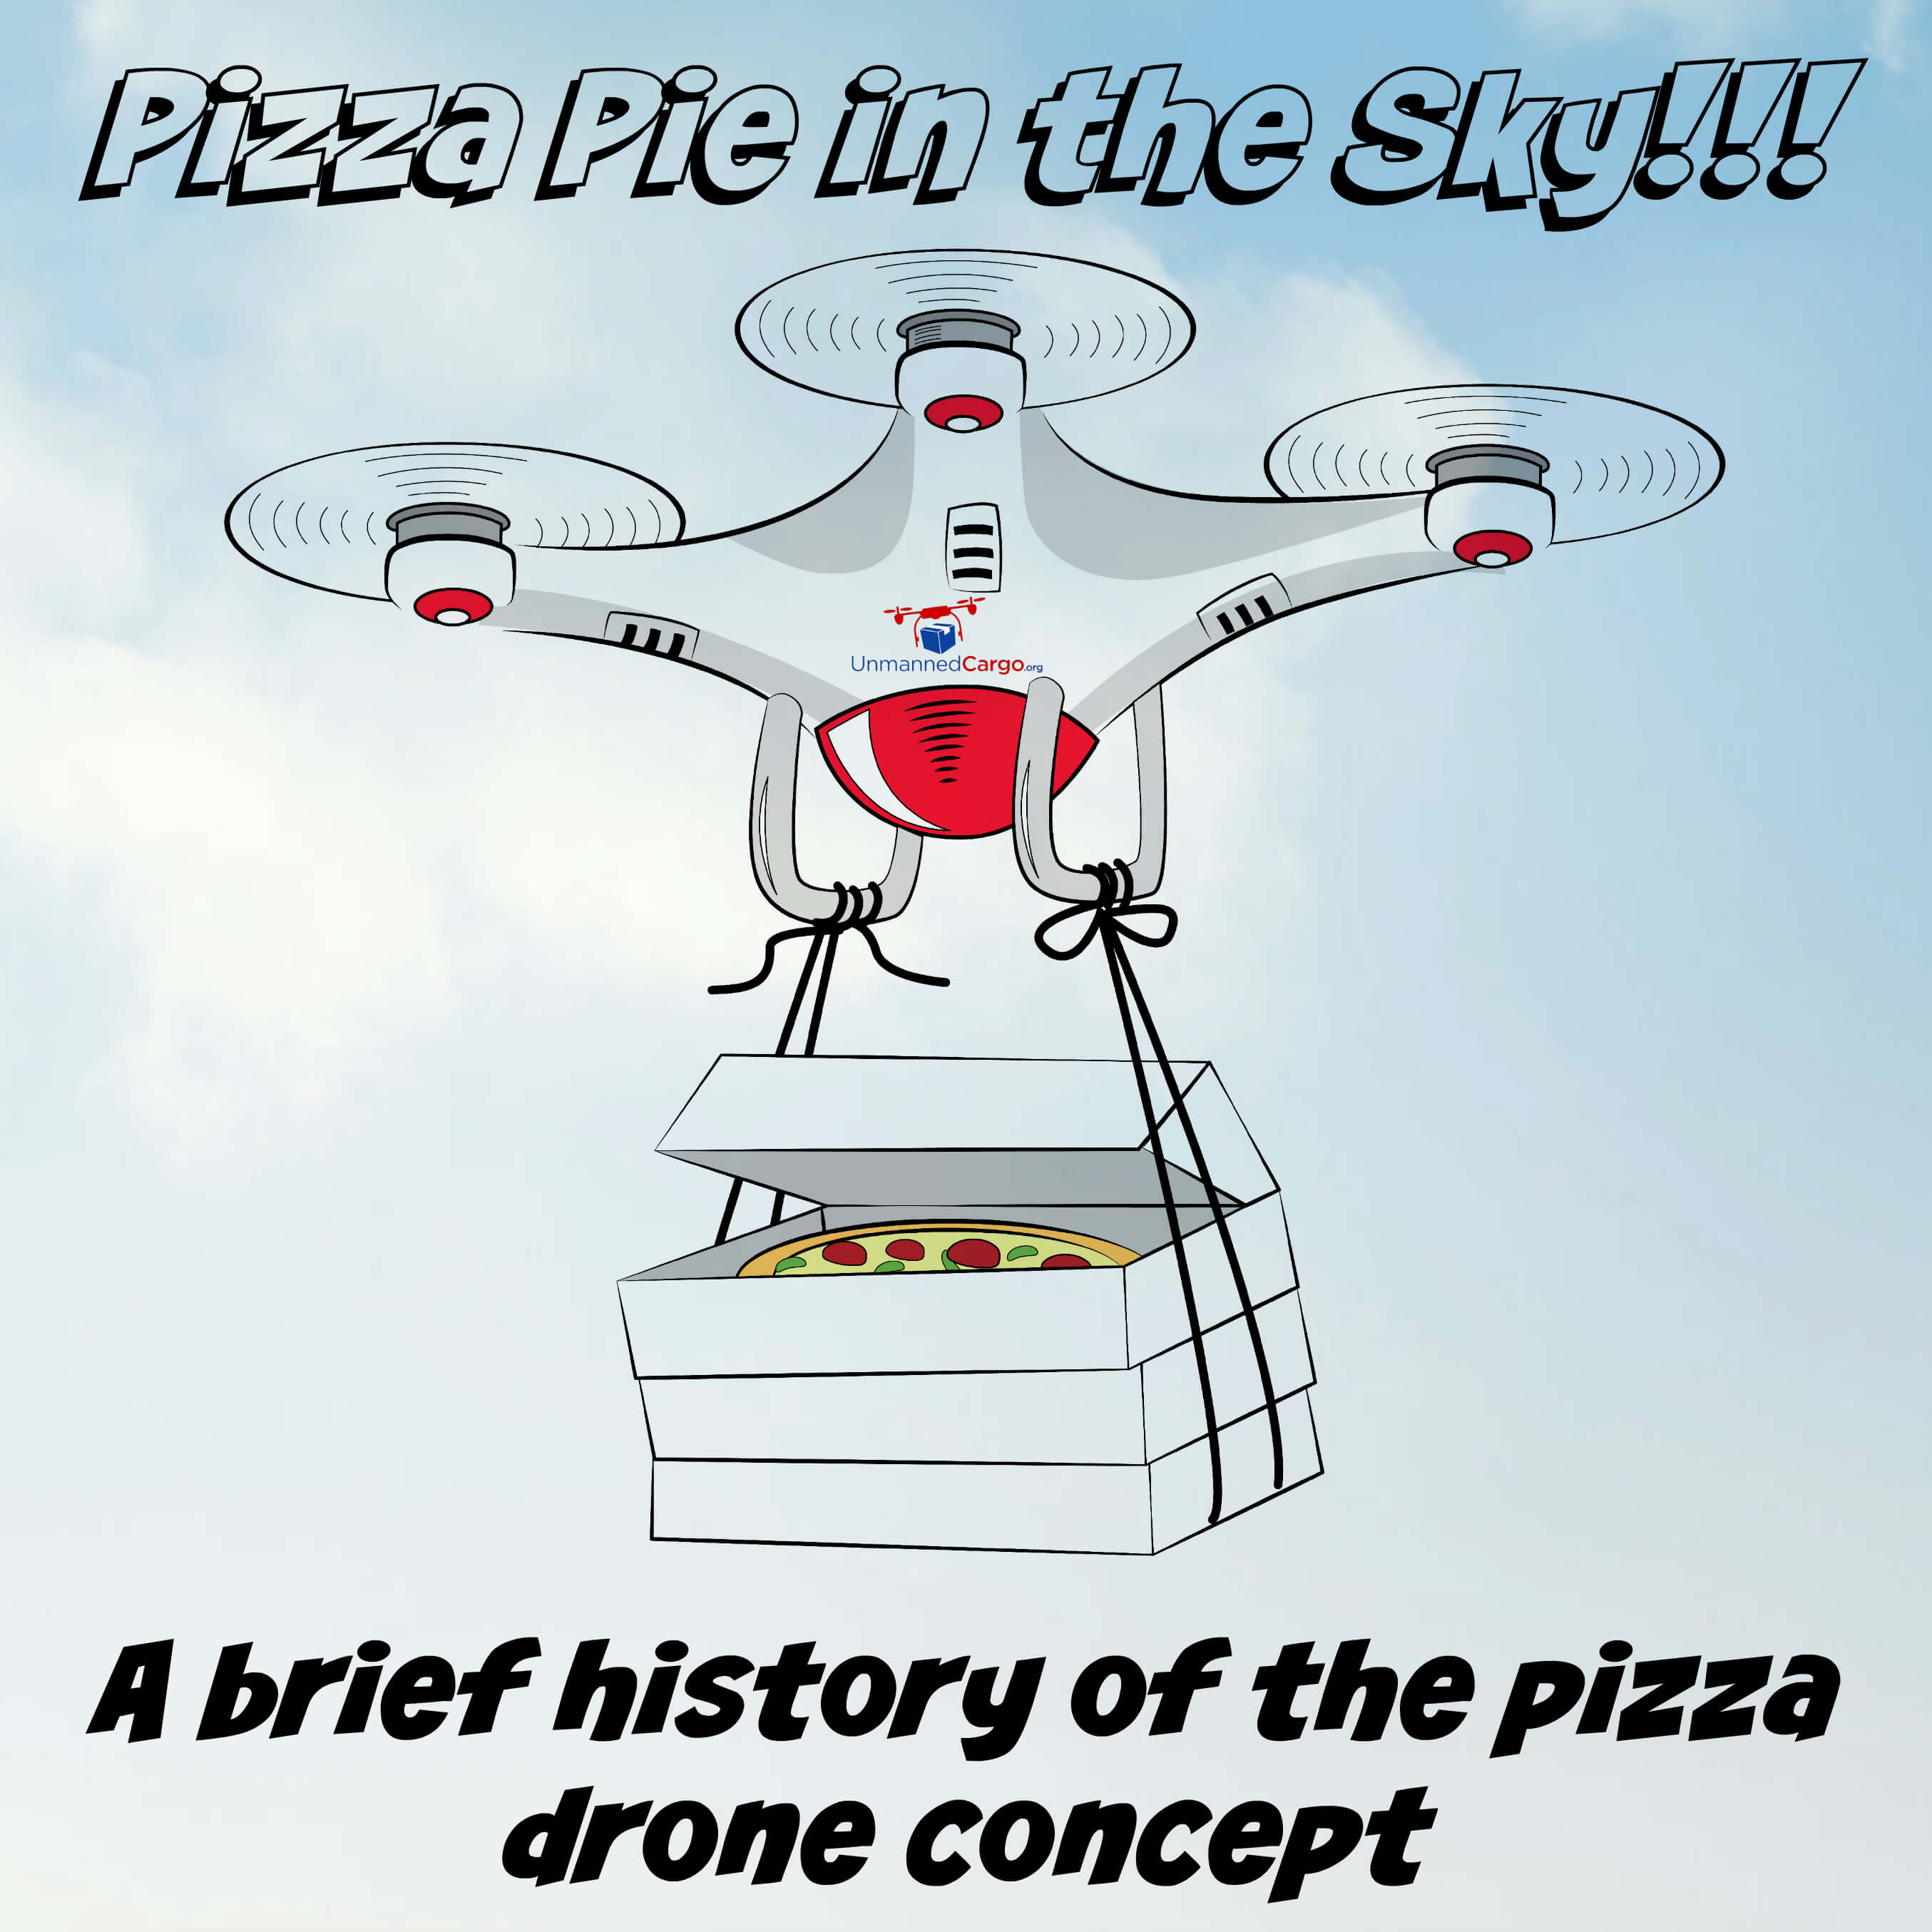 Drones to deliver pizza - Unmannedcargo.org